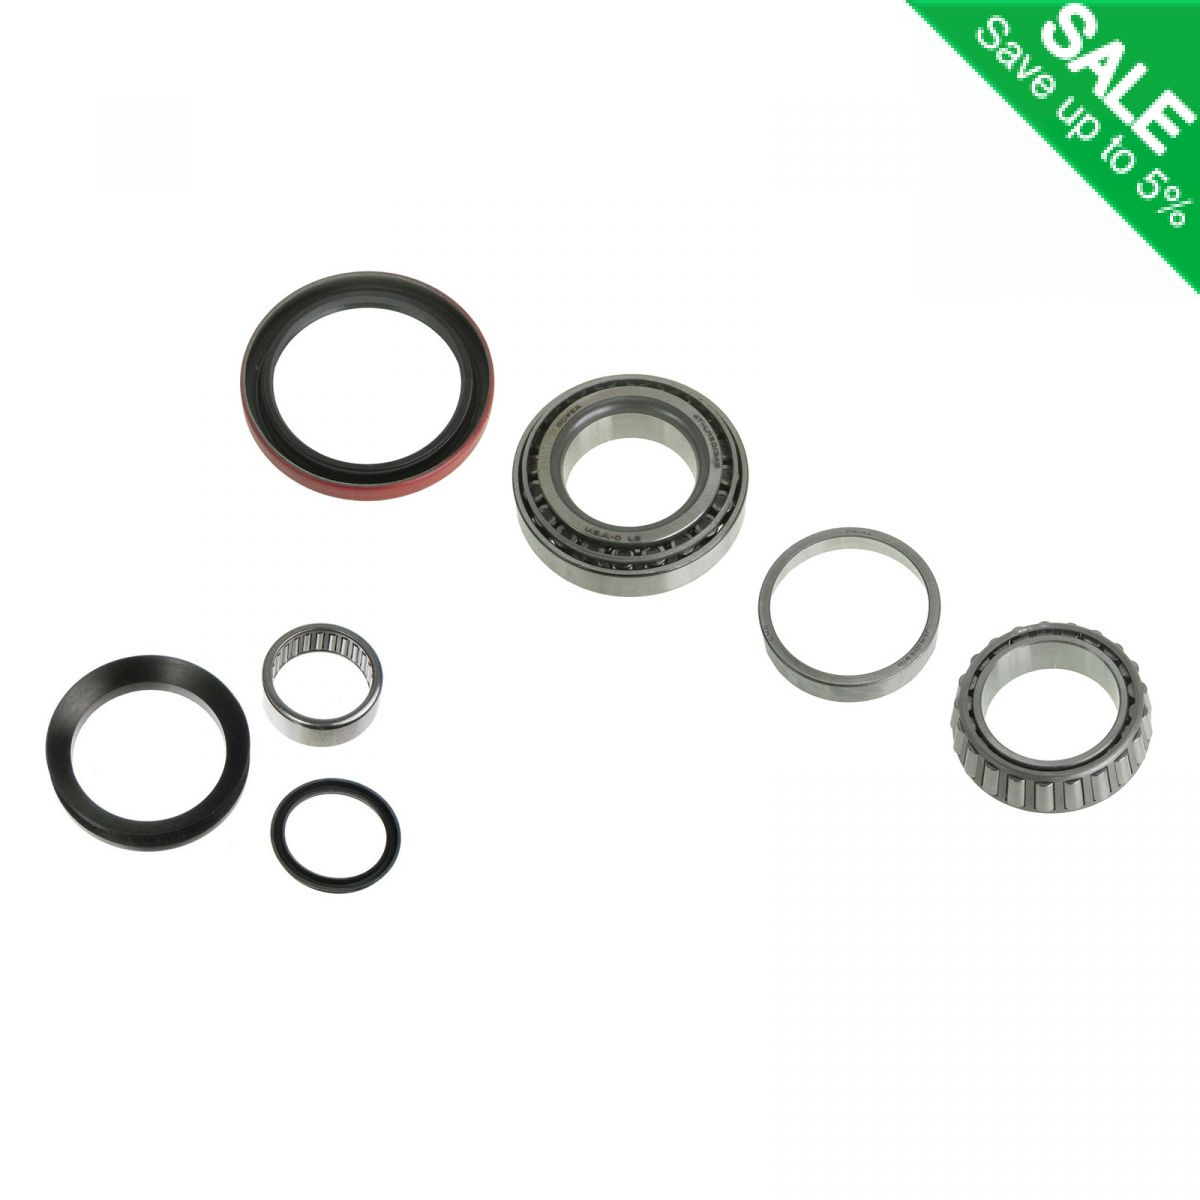 Front Spindle & Wheel Bearing Repair Kit for Chevy GMC